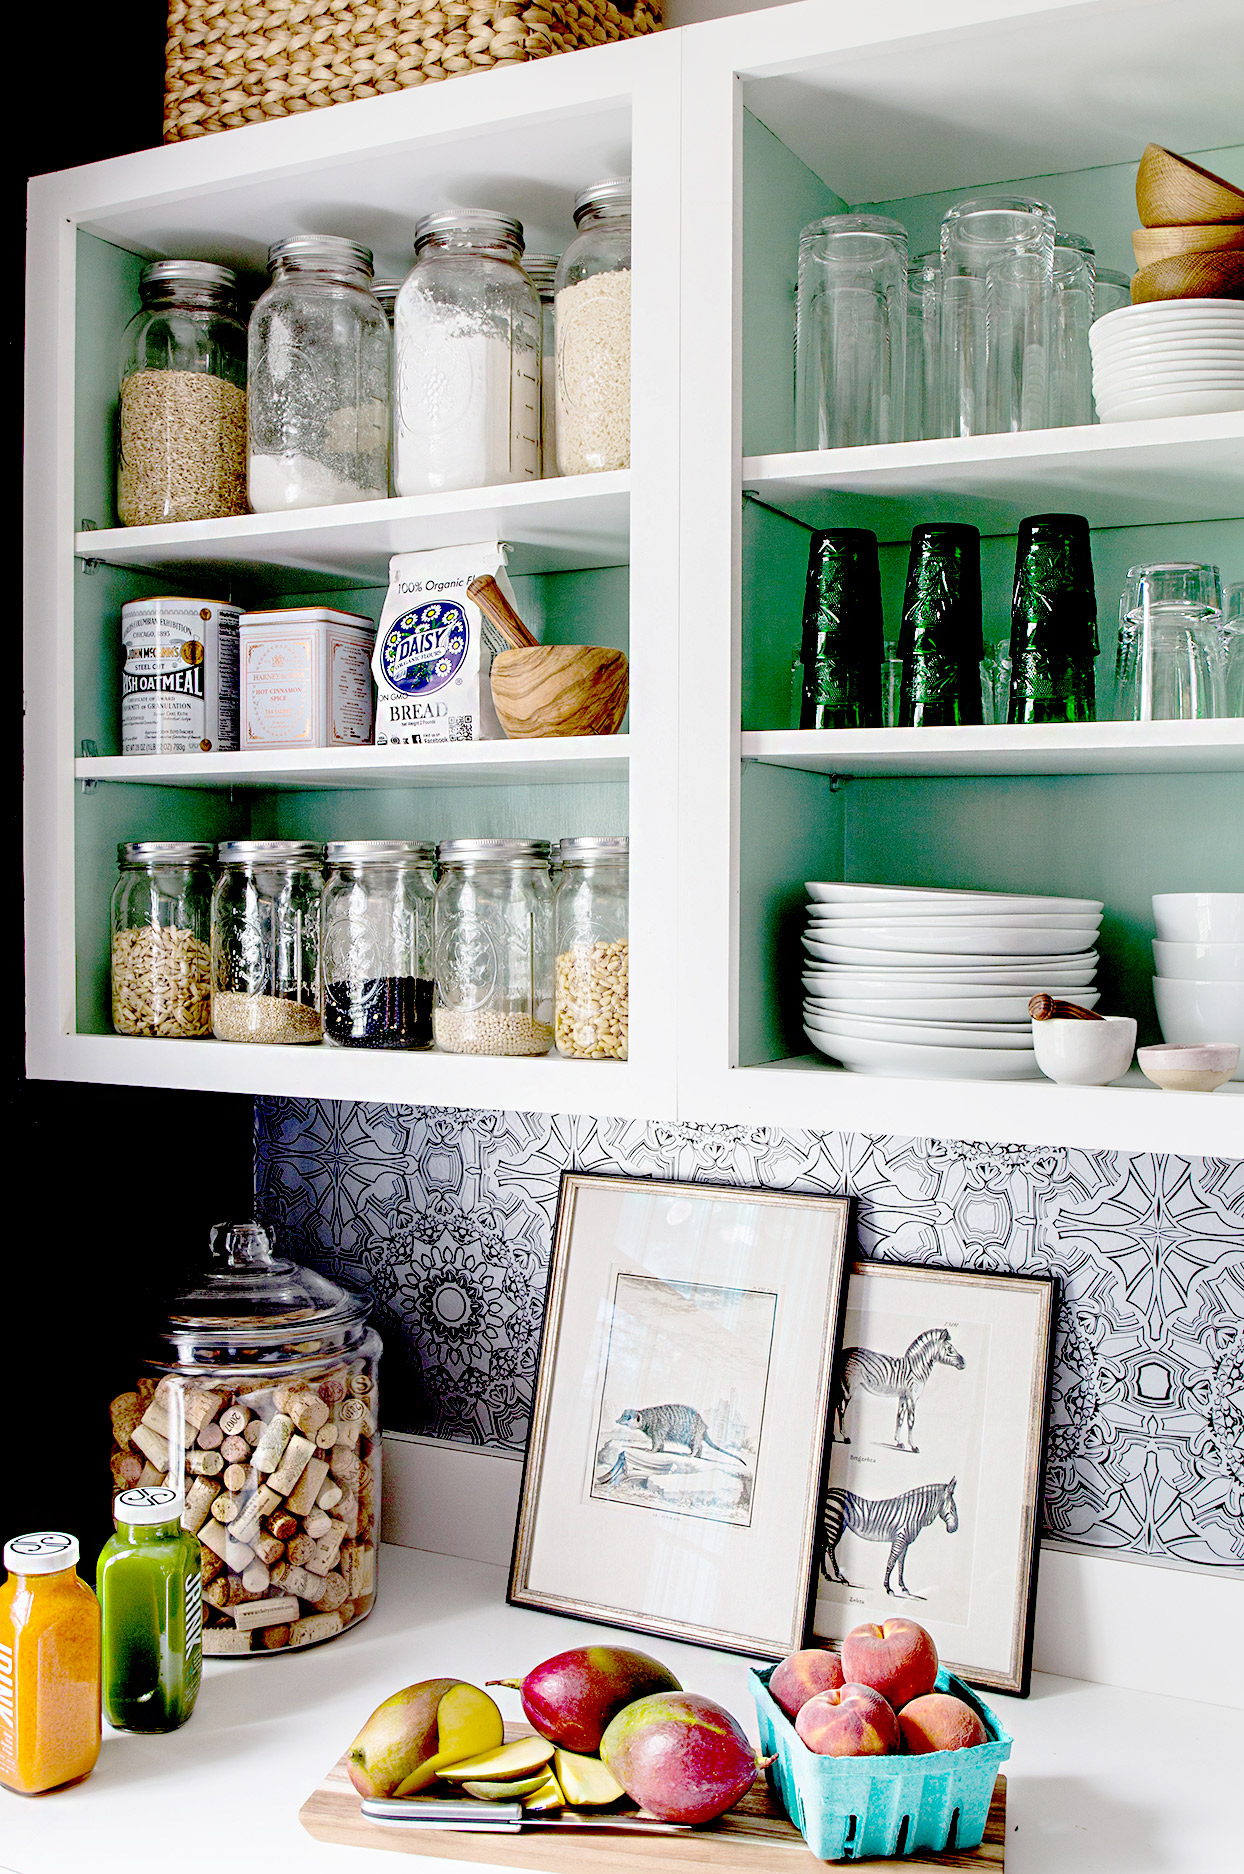 Kitchen shelving with organized dishes and pantry items